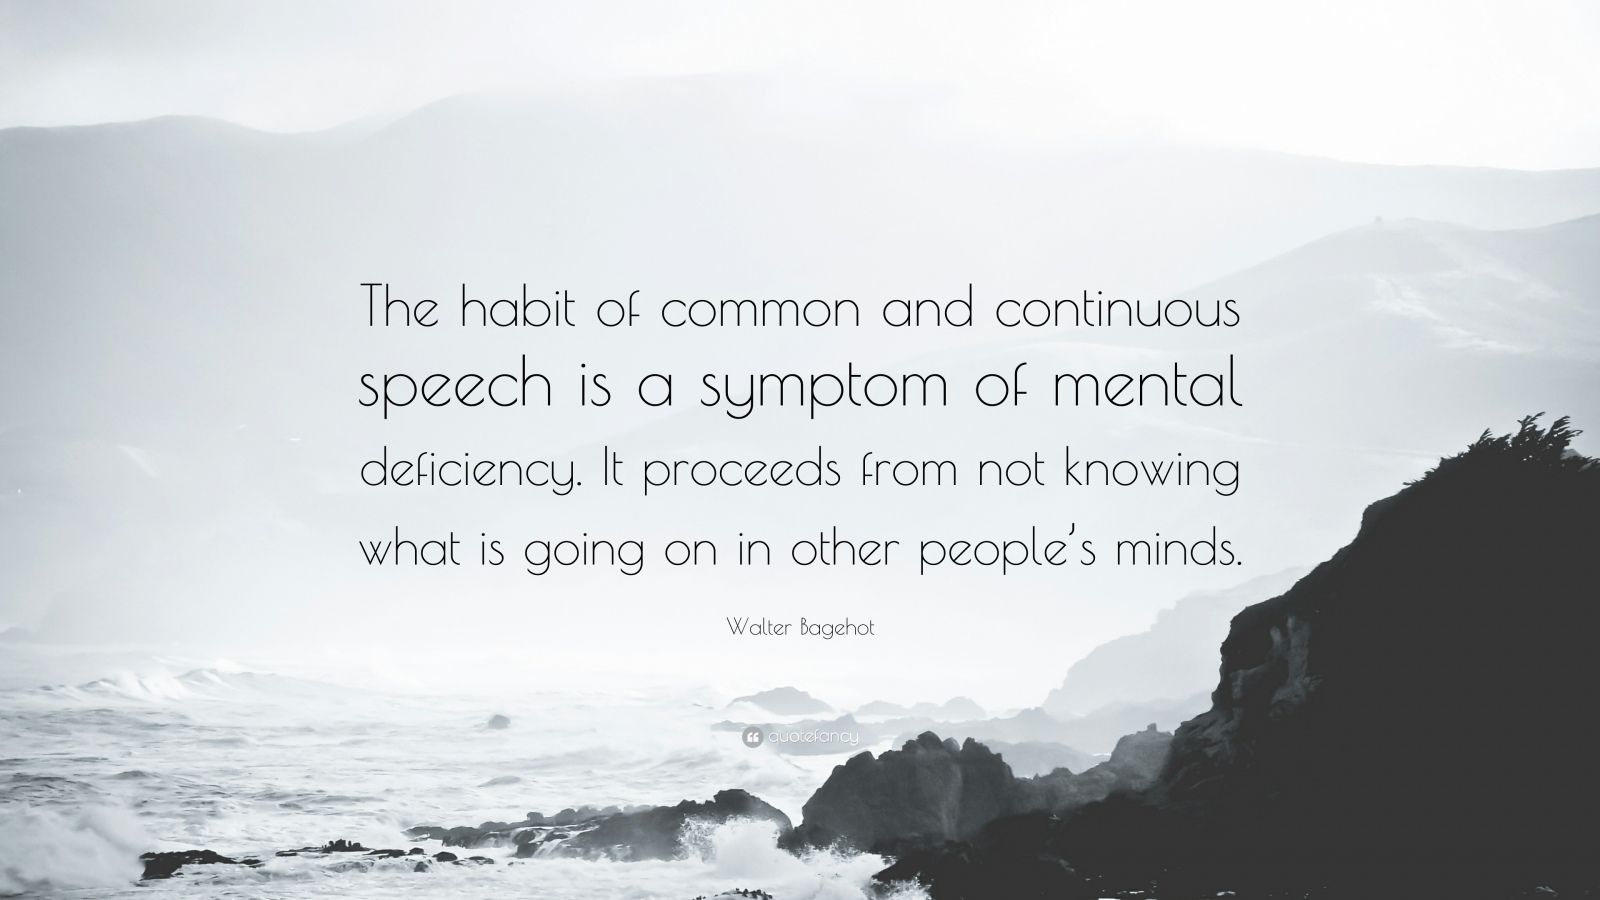 """Walter Bagehot Quote: """"The habit of common and continuous speech is a symptom of mental deficiency. It proceeds from not knowing what is going on in other people's minds."""""""